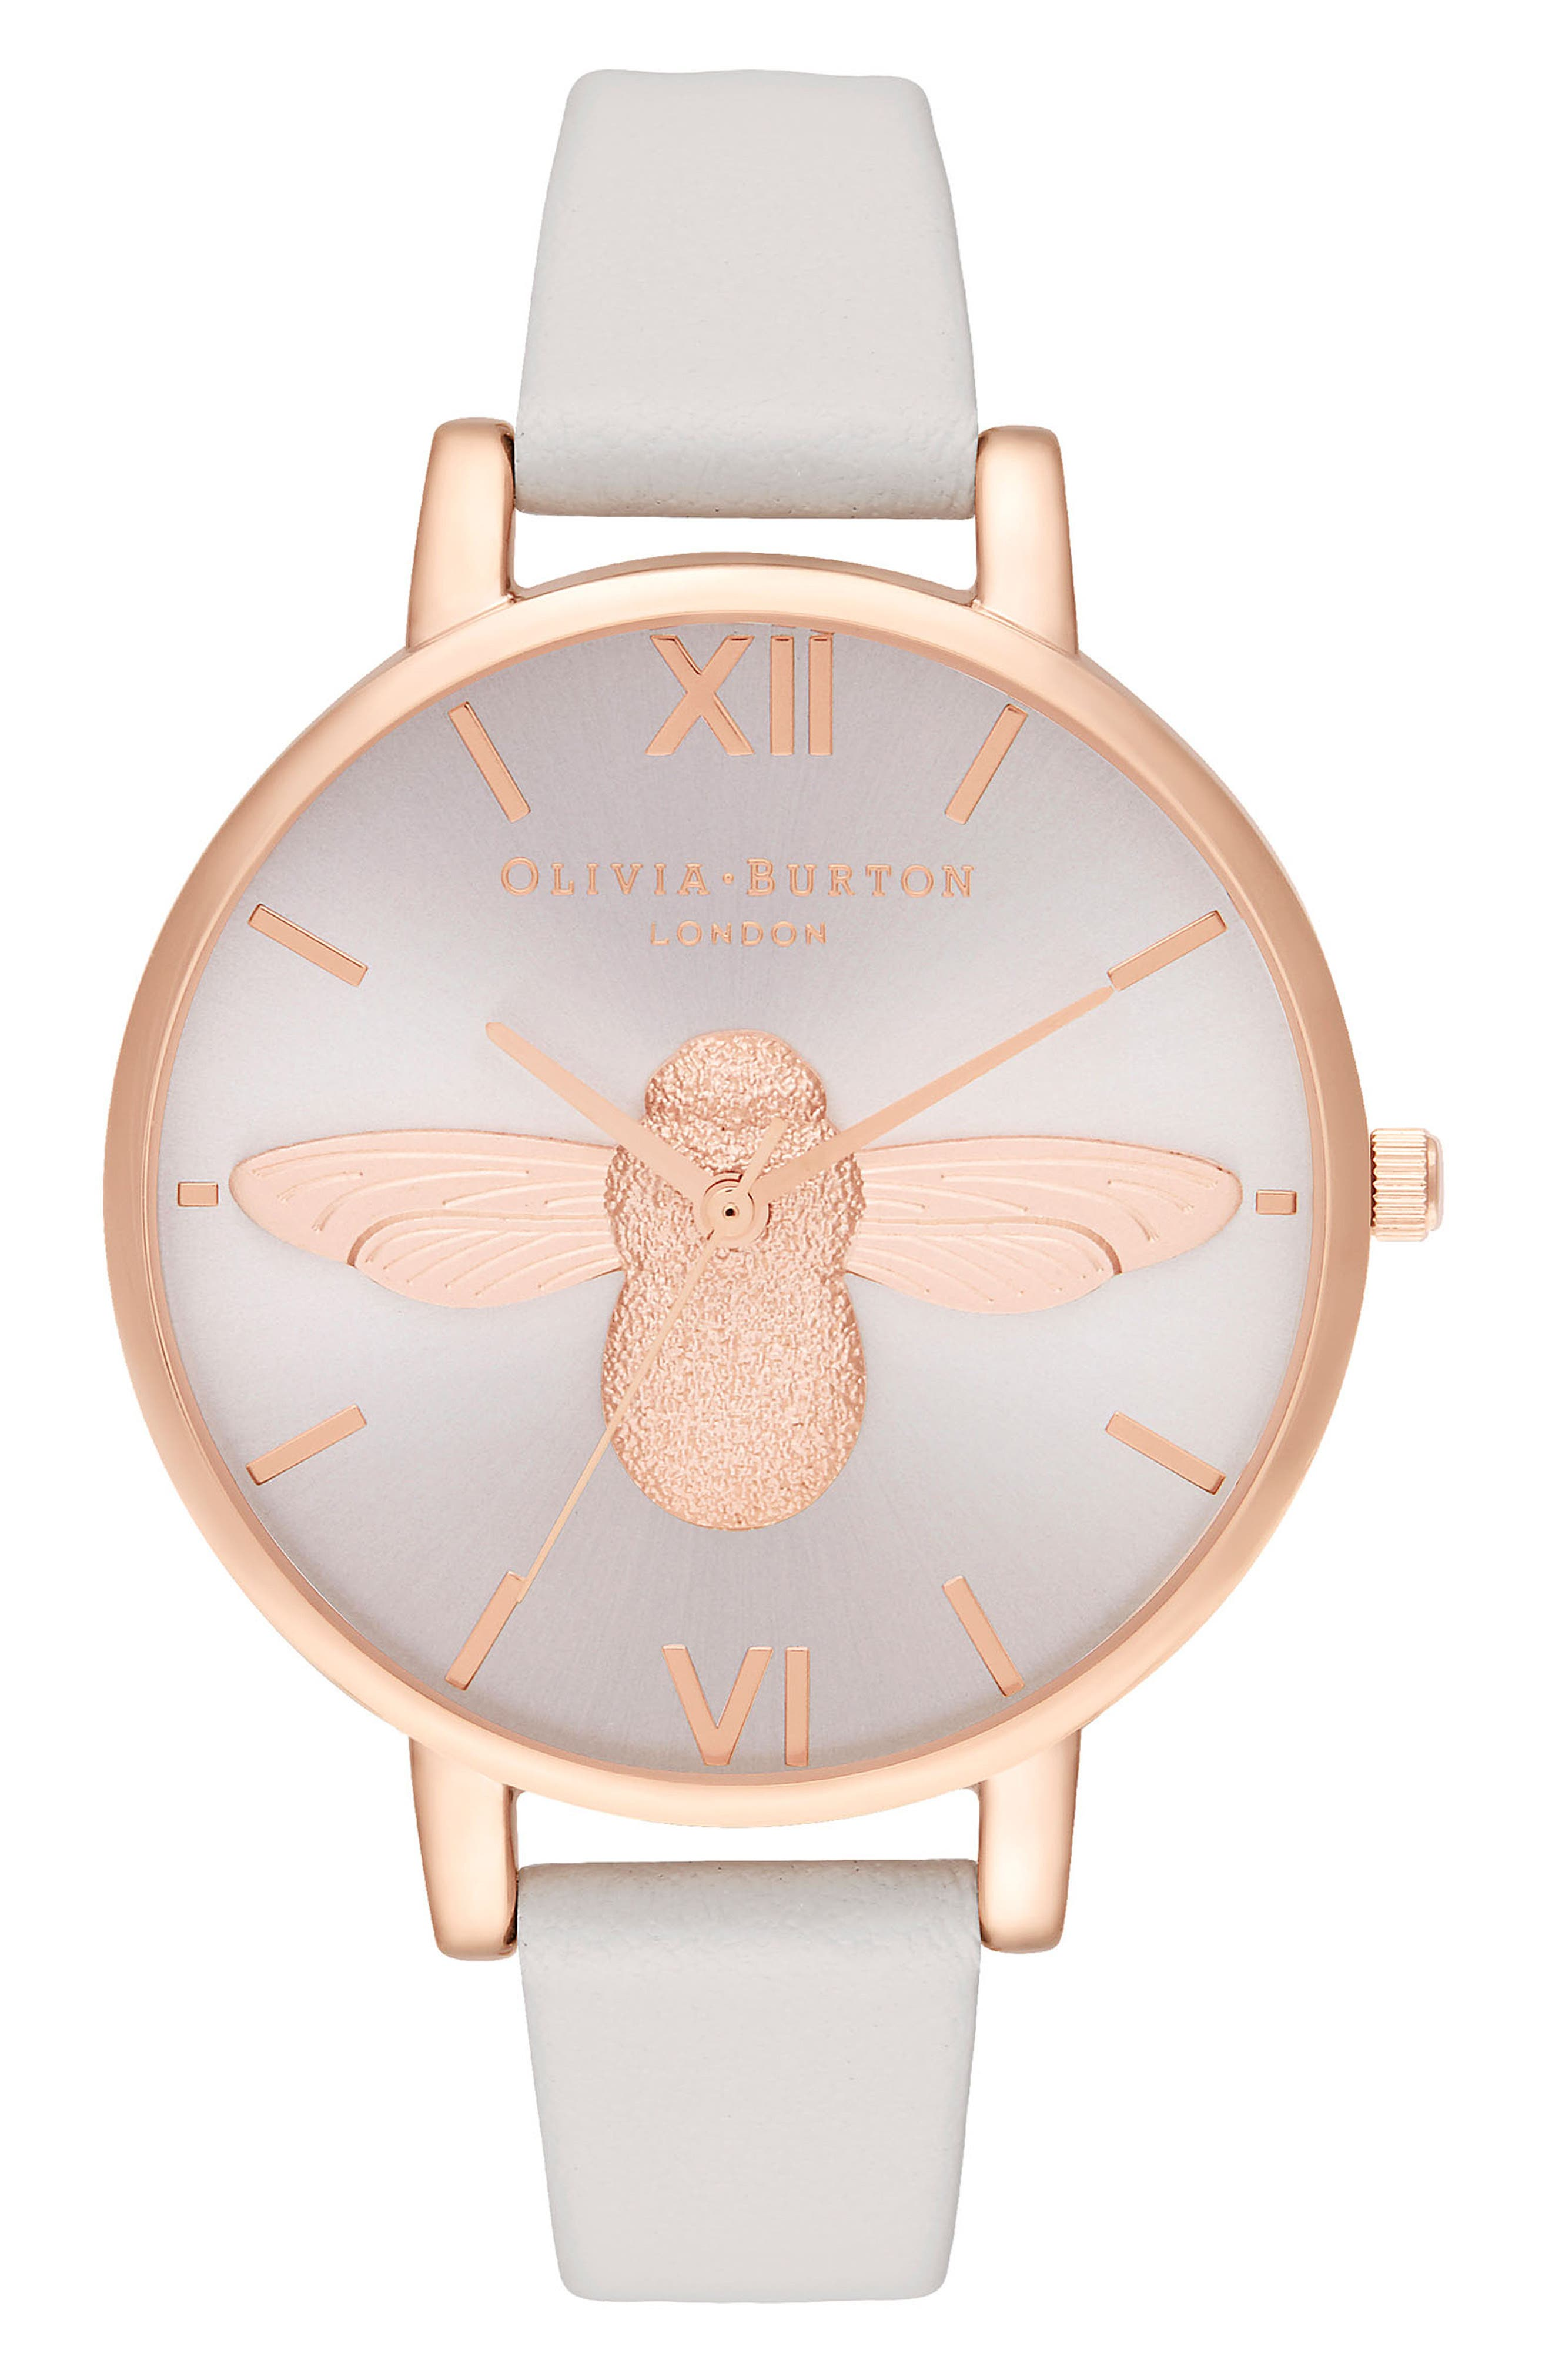 OLIVIA BURTON, 'Molded Bee' Leather Strap Watch, 38mm, Main thumbnail 1, color, BLUSH/ SUNRAY BEE/ ROSE GOLD